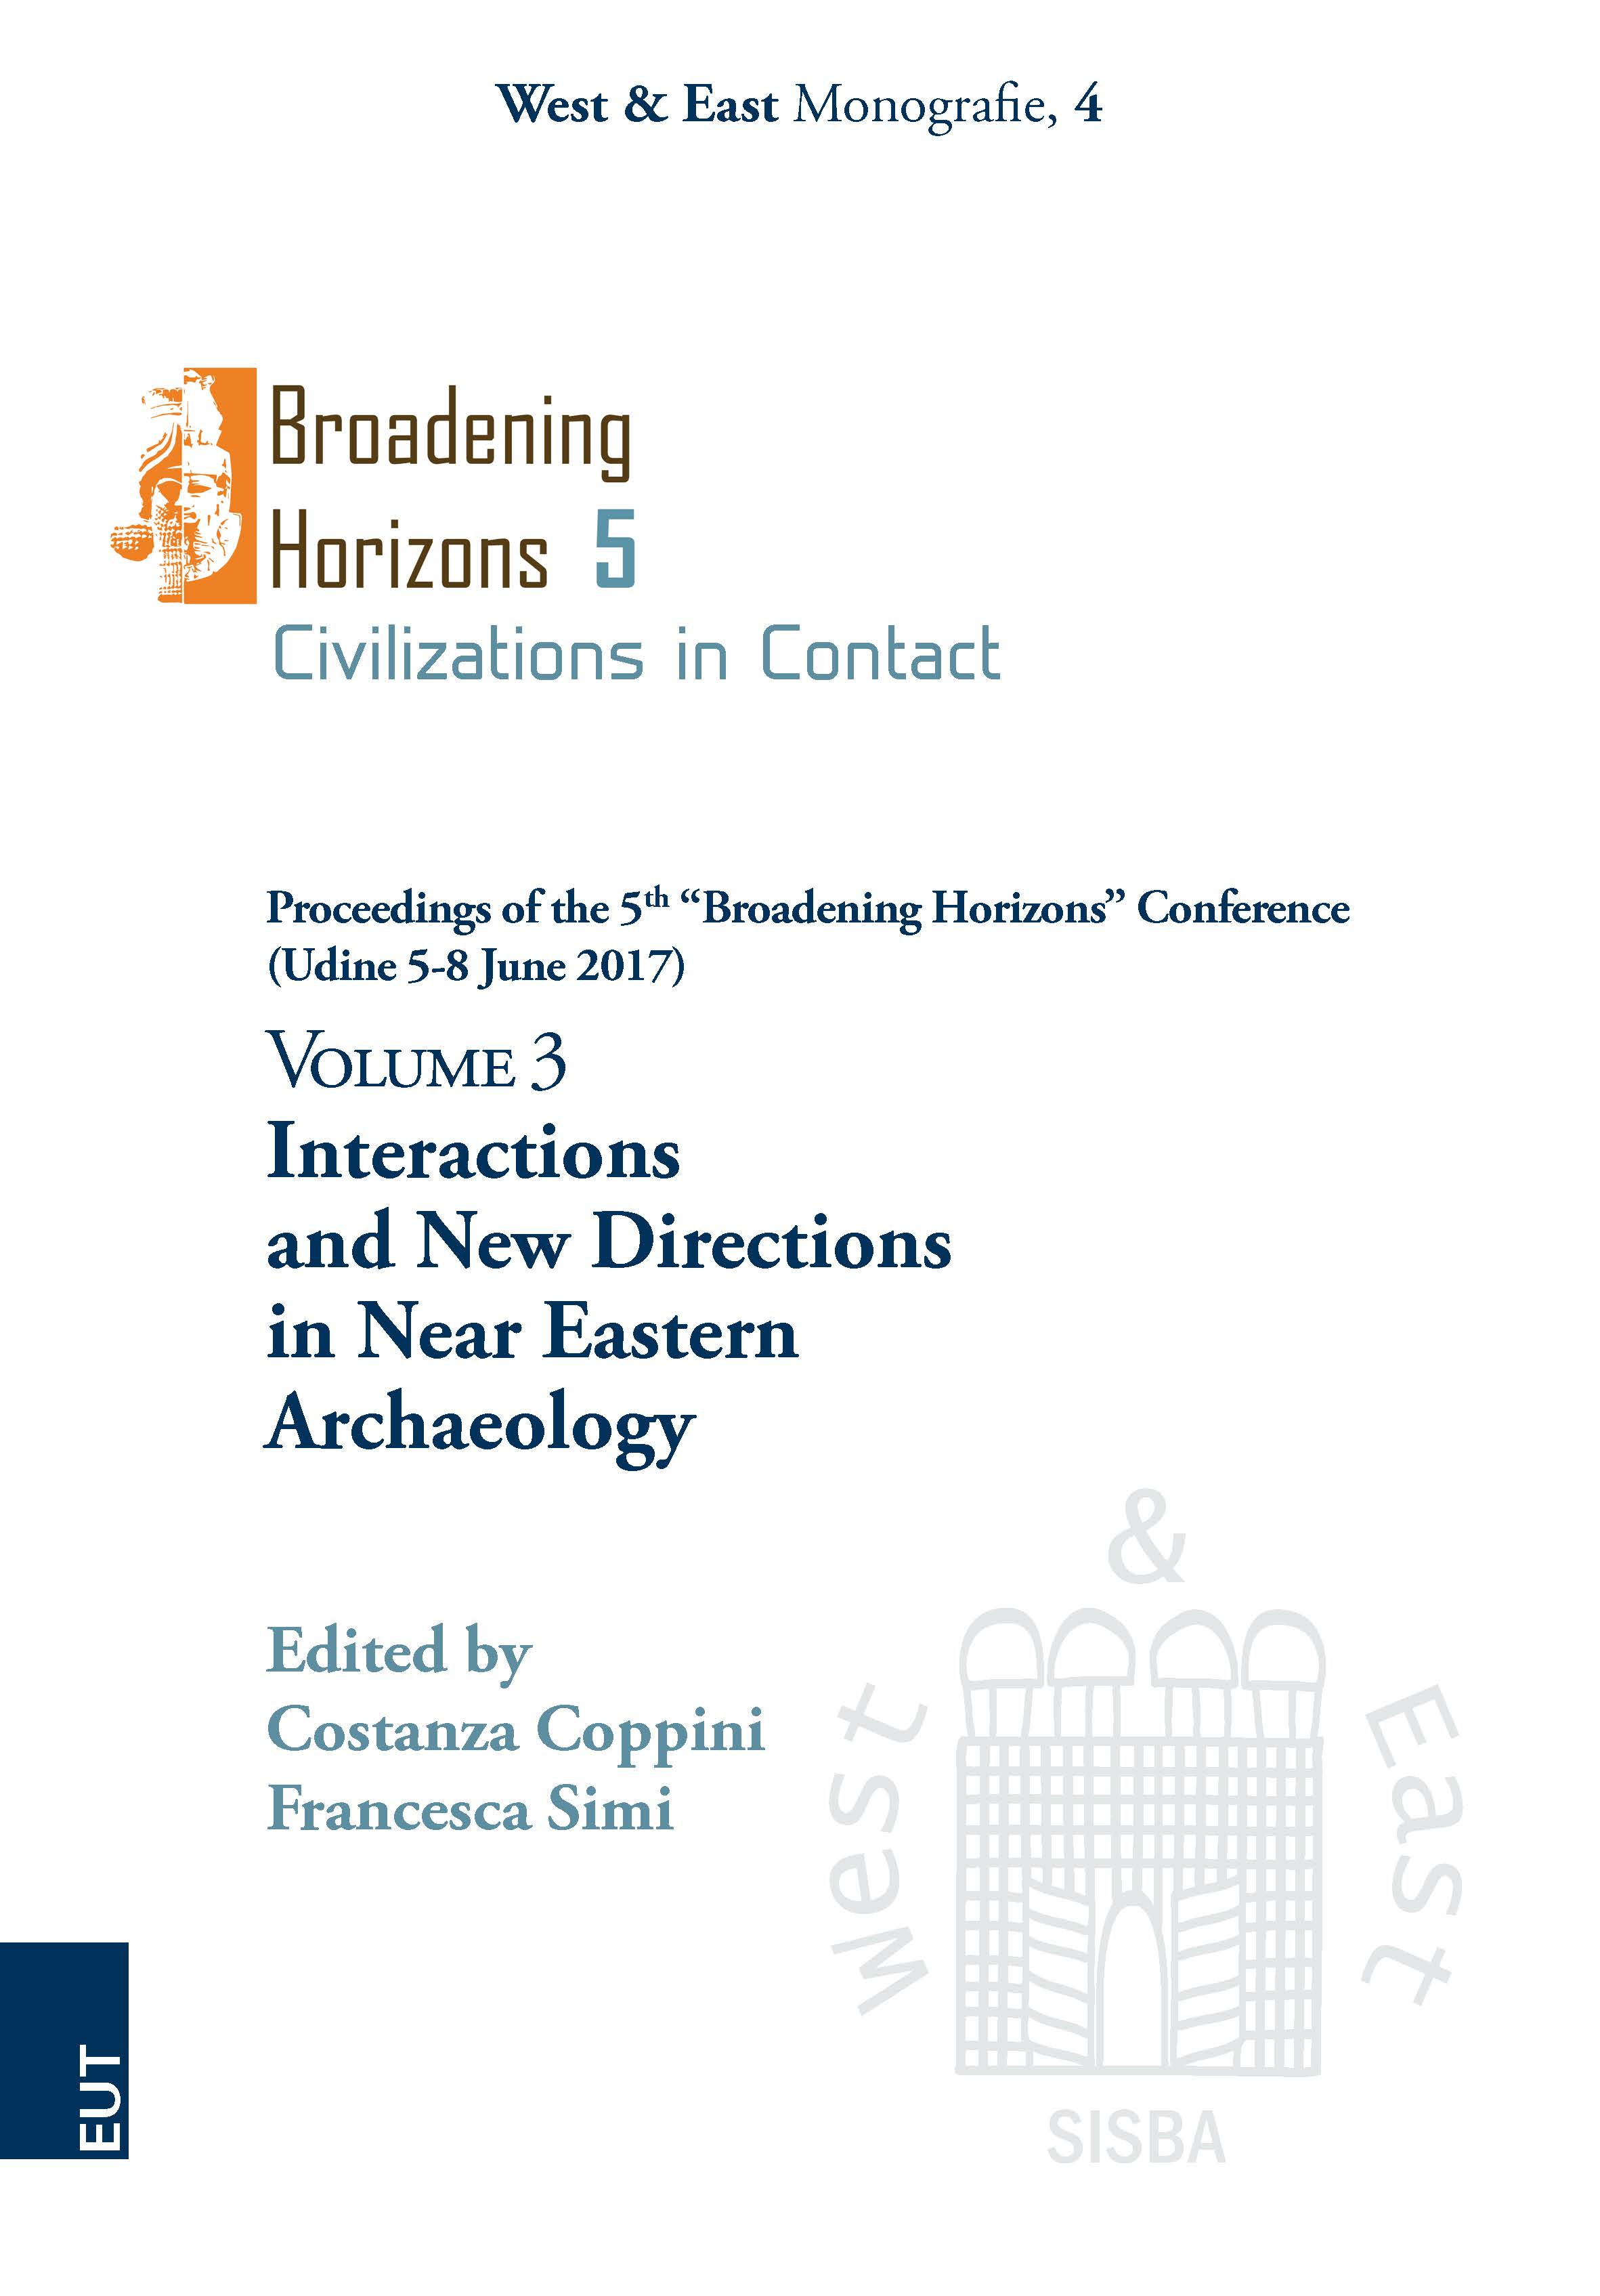 """Interactions and New Directions in Near Eastern Archaeology. Volume 3. Proceedings of the 5<sup>th</sup> """"Broadening Horizons"""" Conference (Udine 5-8 June 2017)"""